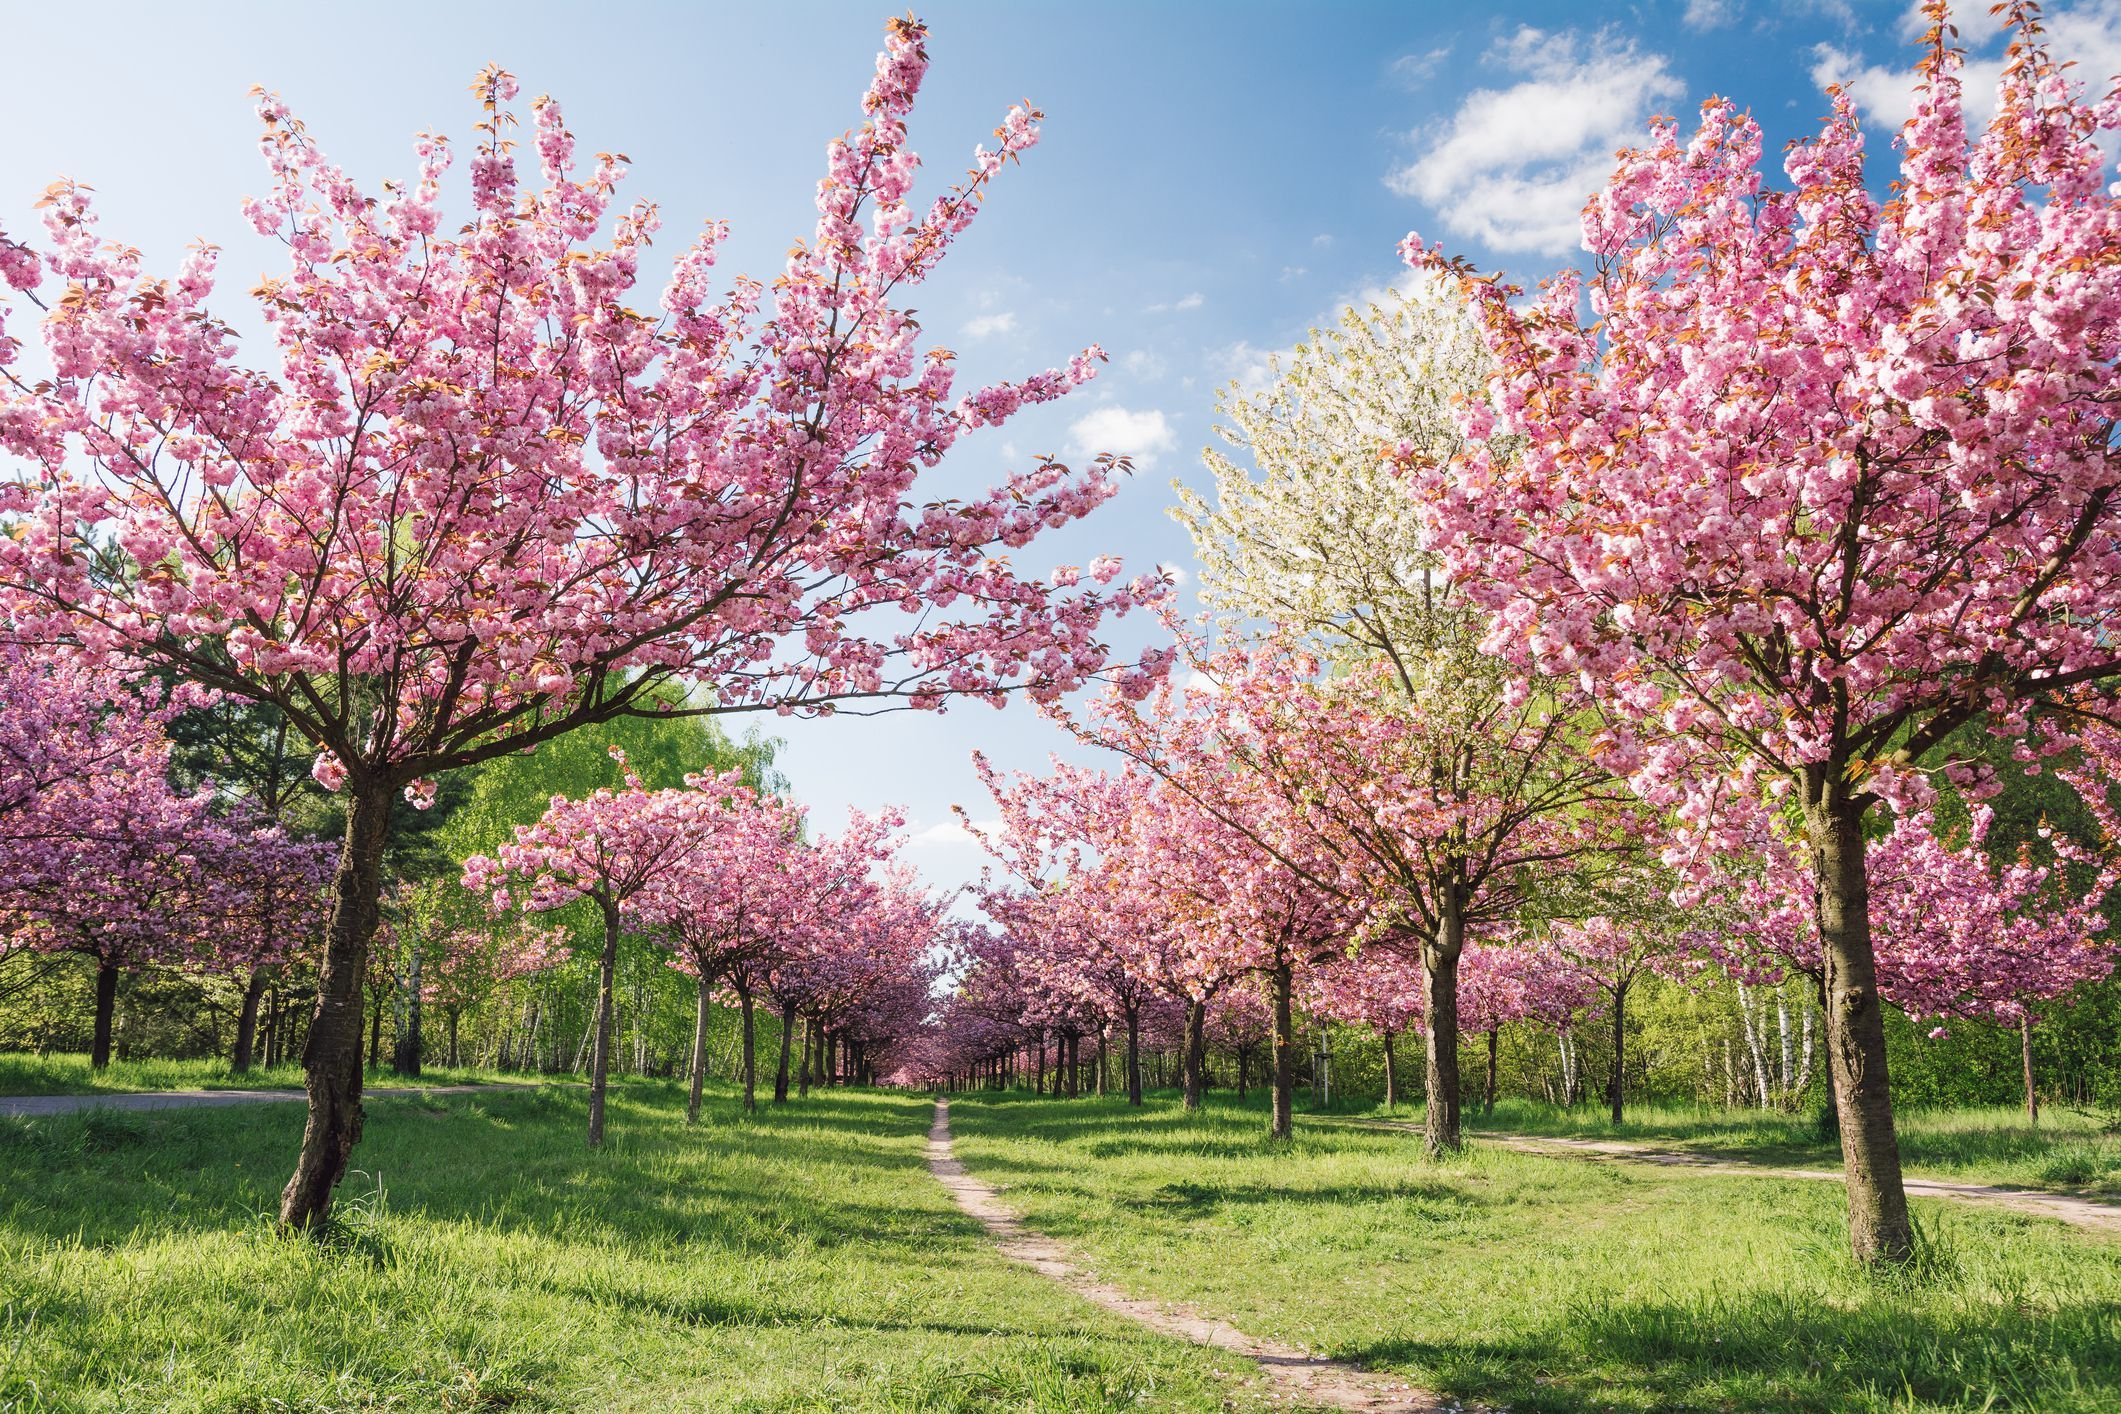 Visiting Germany In Spring Is A Great Time For Cherry Blossoms Festivals And Warmer Weather The Bes Magnolia Tree Landscaping Spring Landscape Blossom Trees